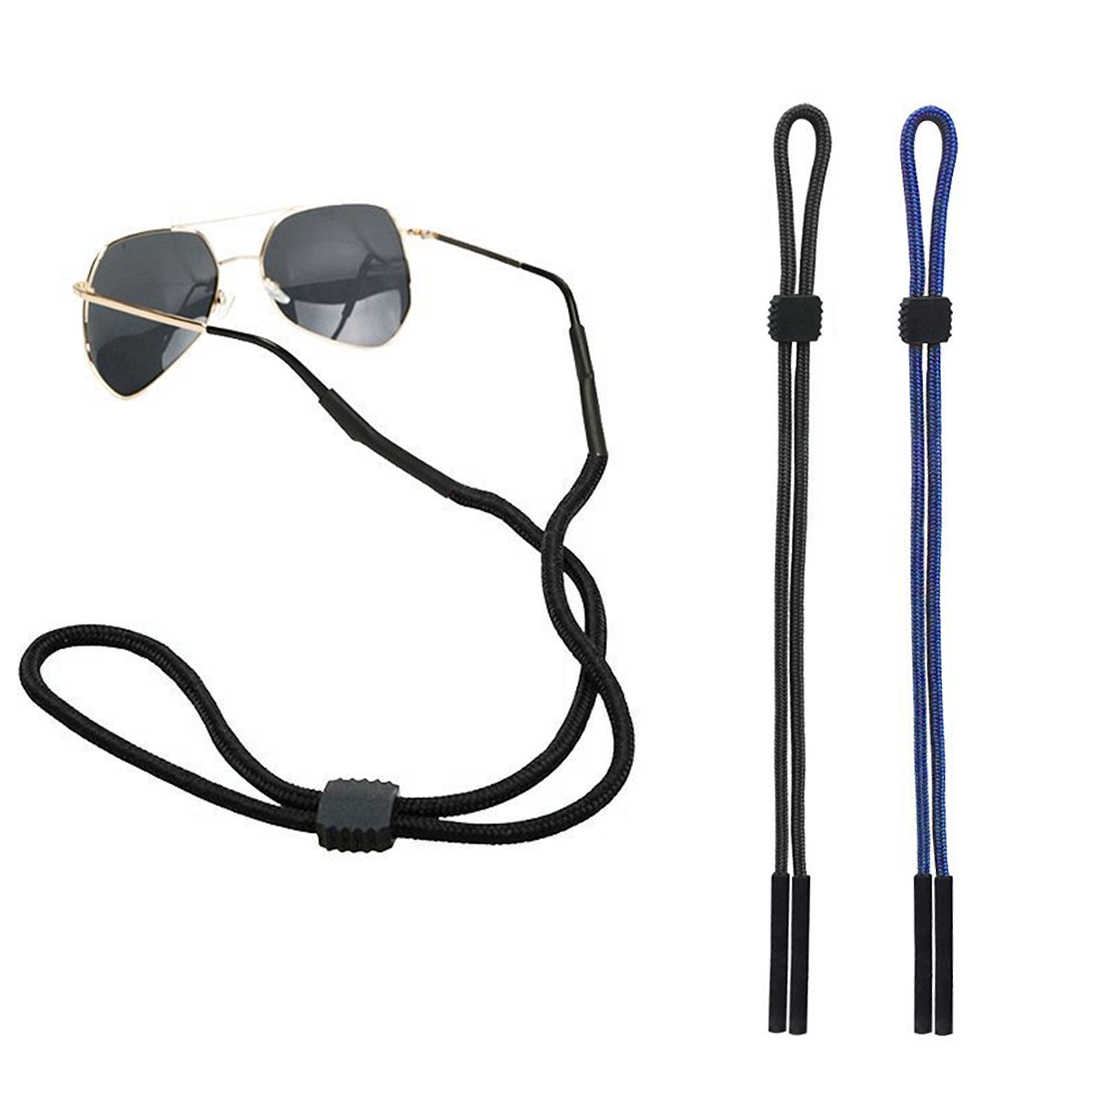 Elastic Eyeglasses Cord Adjustable Glasses Lanyards Neck String Cord Retainer Strap Head Band Glasses Rope sunglasses cord